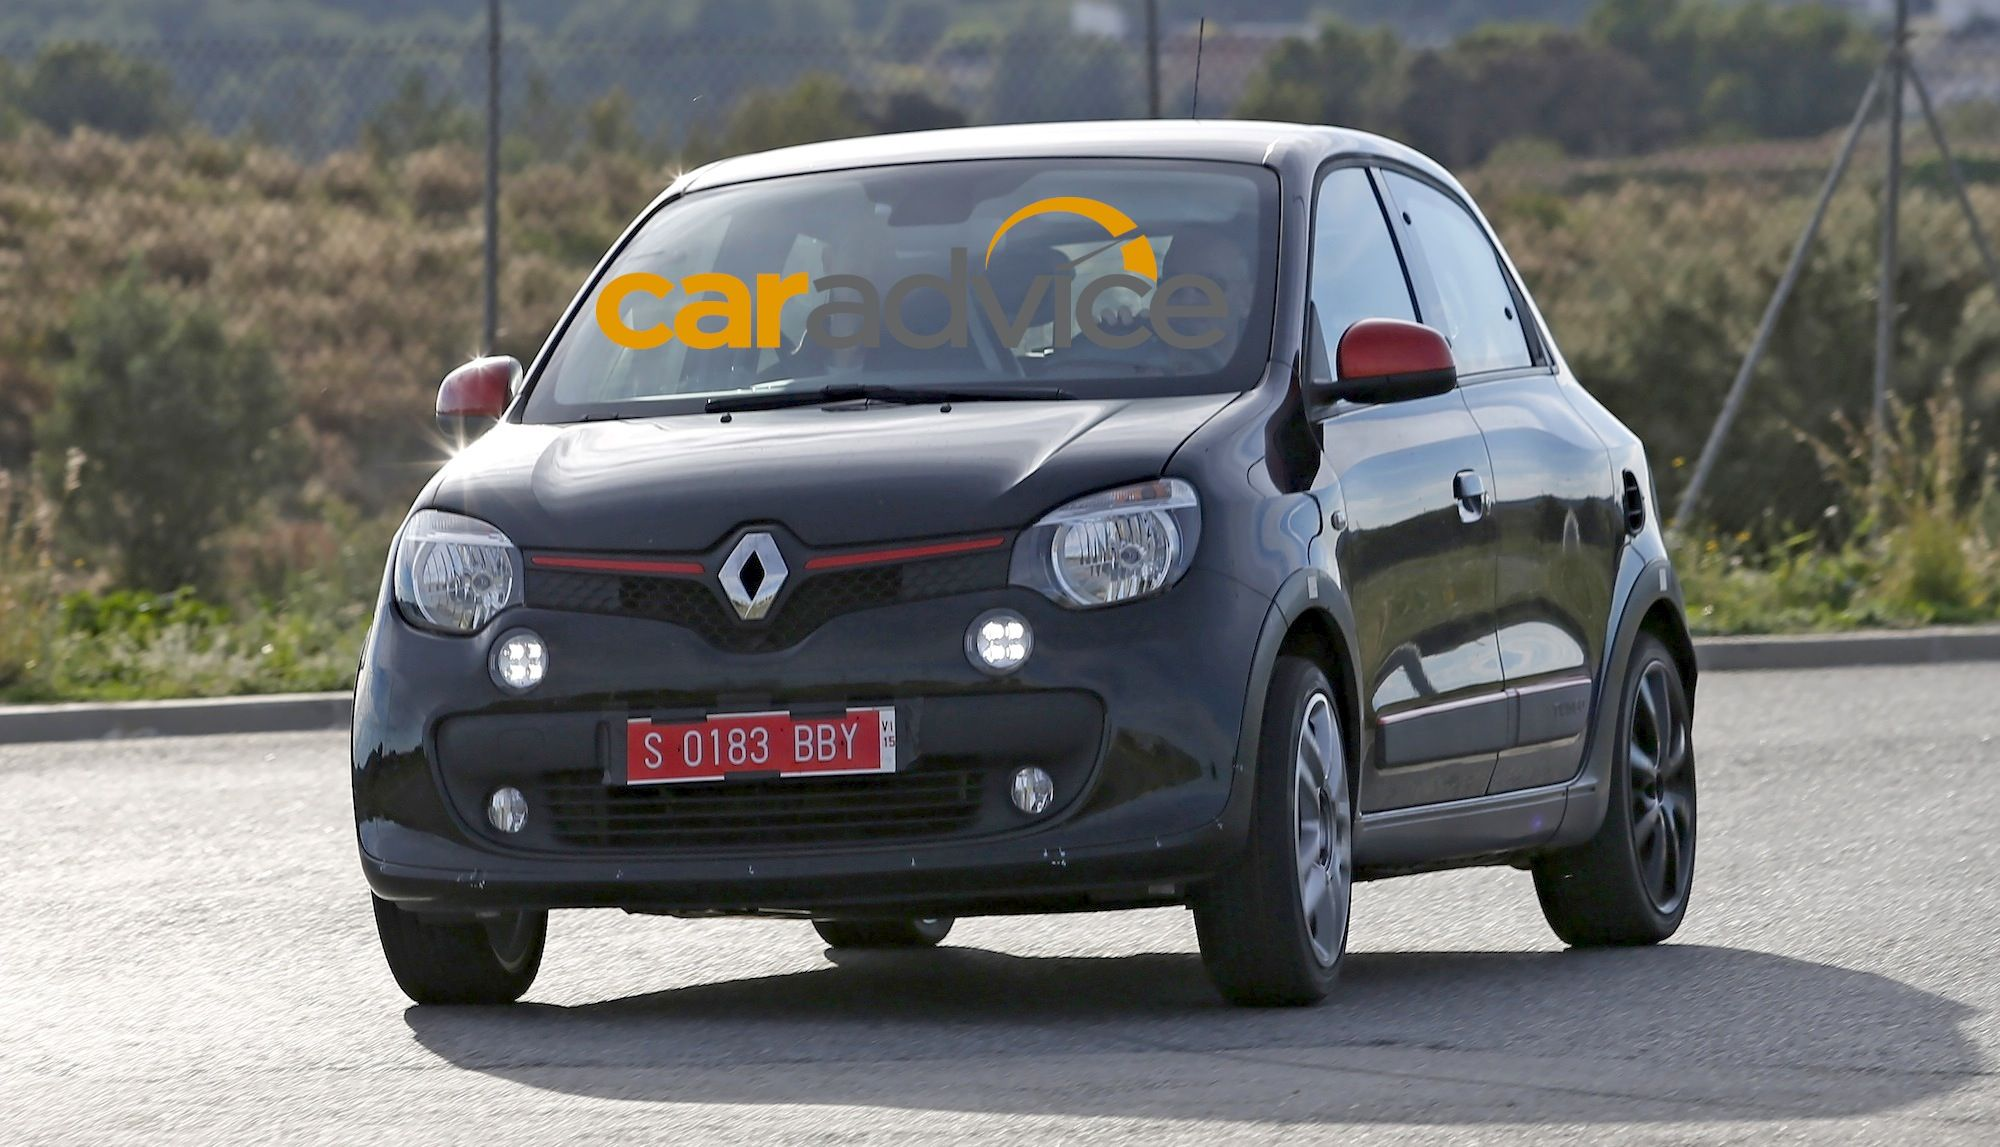 Pin By Caradvice On What Is Going On New Renault City Car Spy